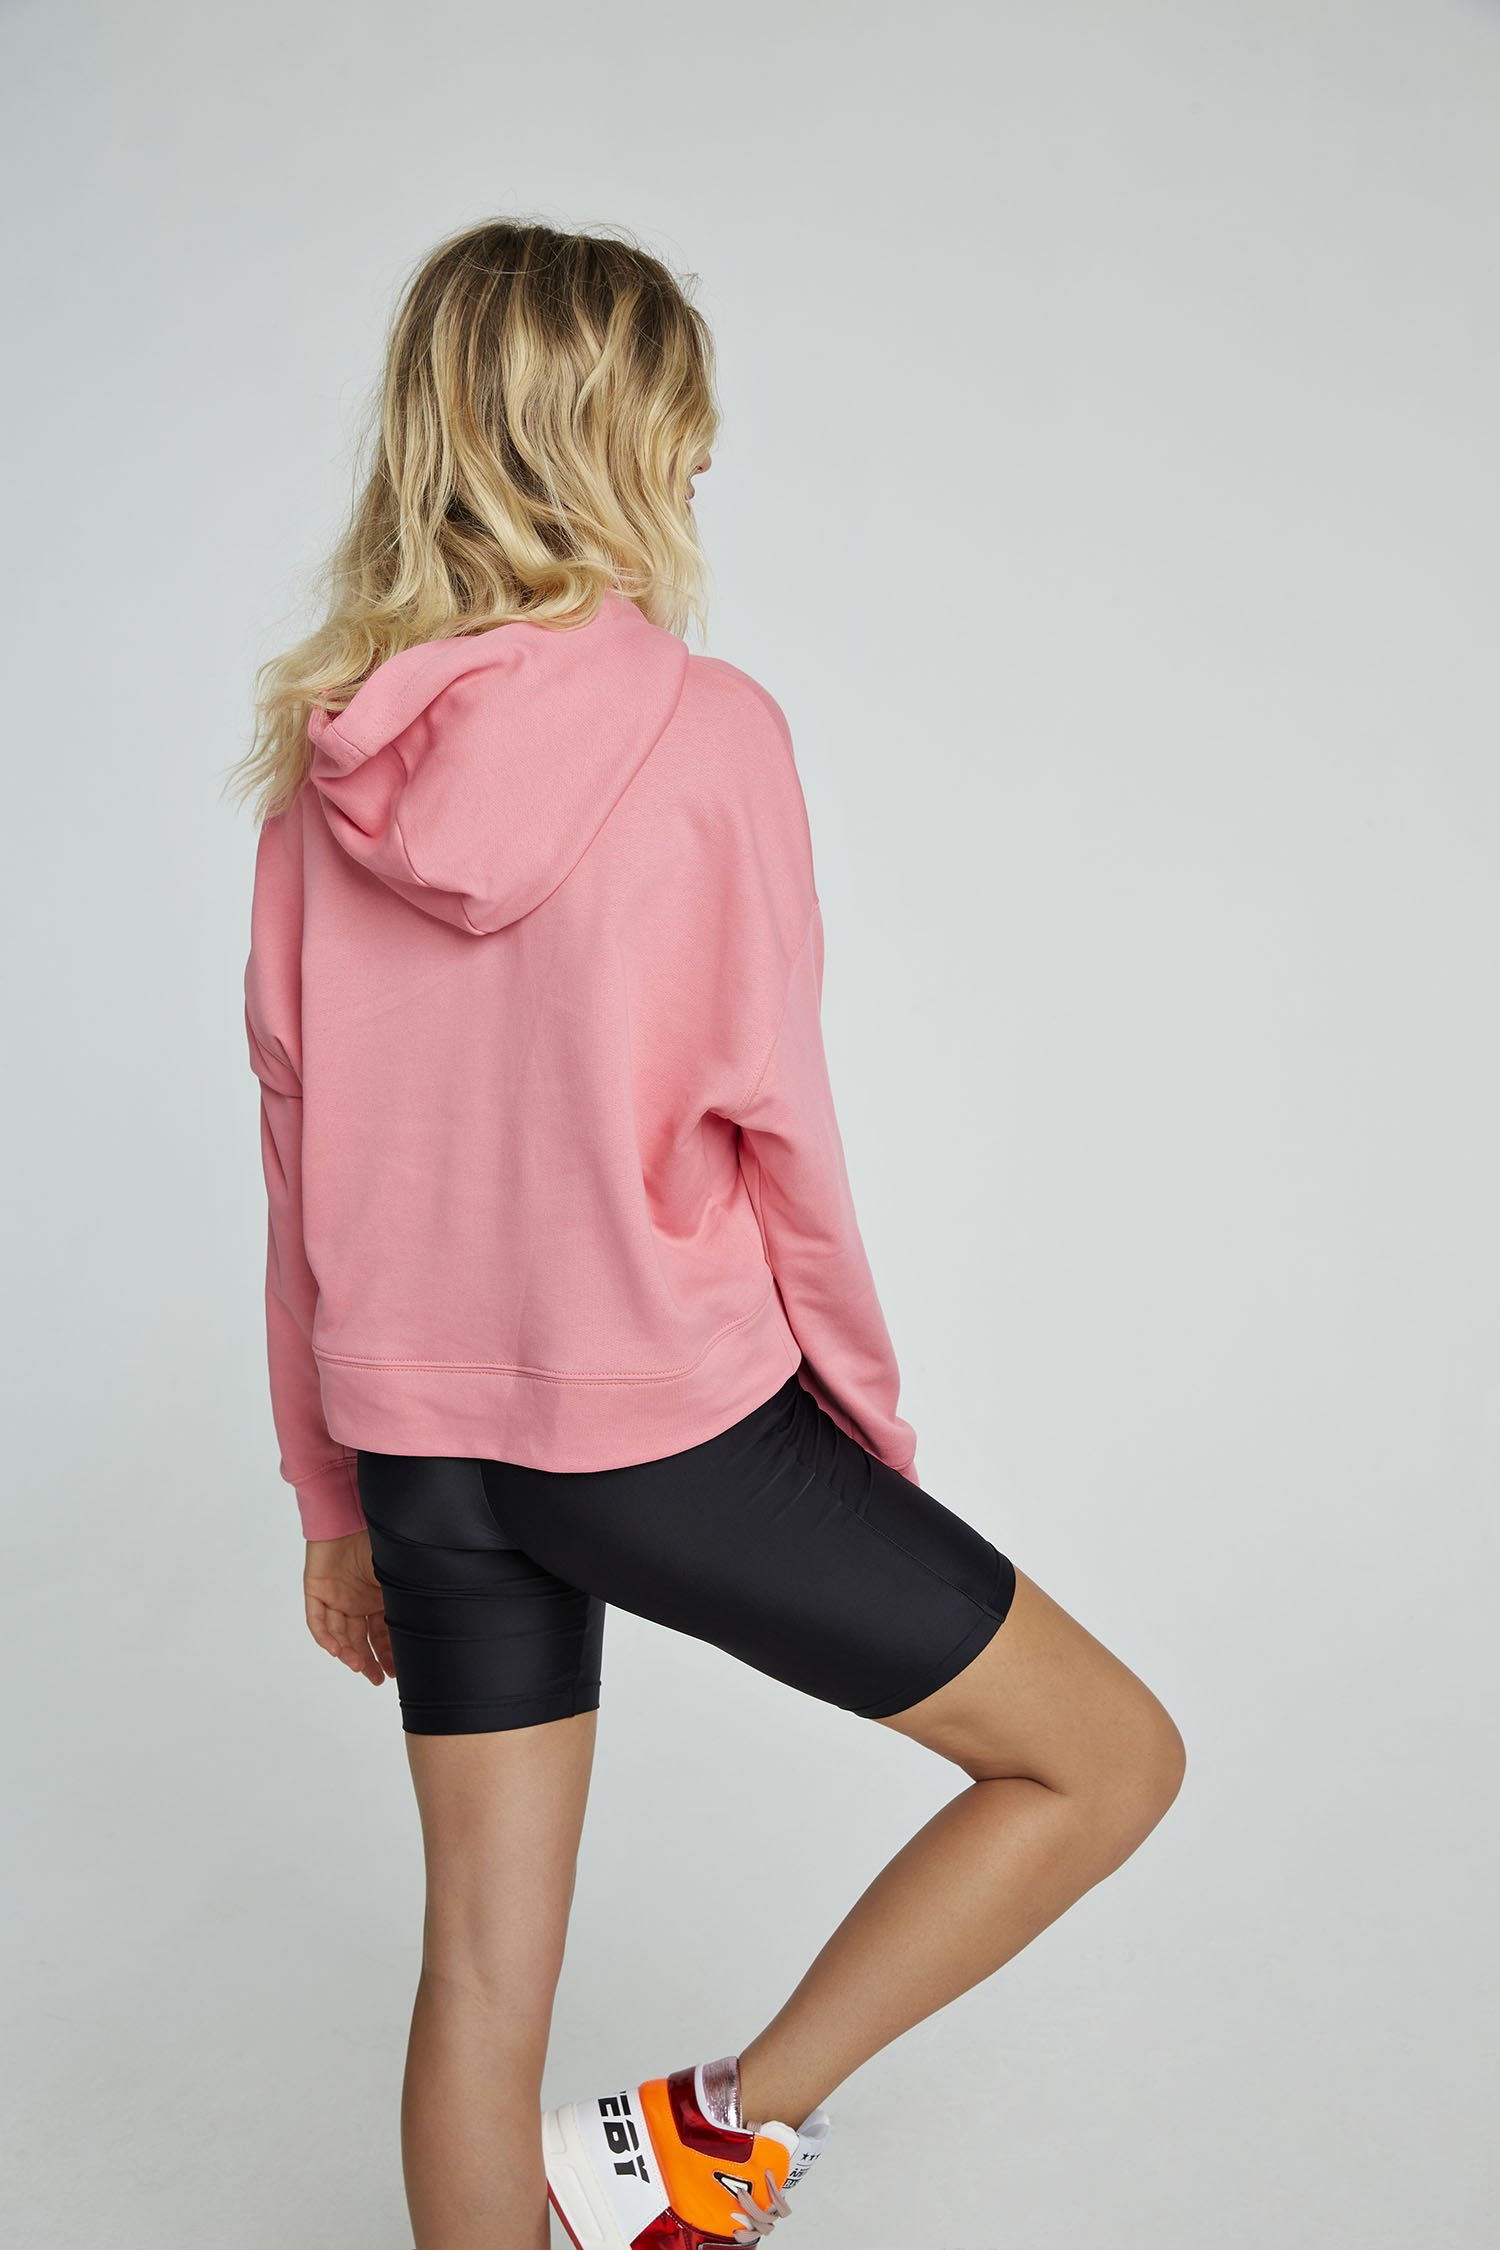 SHOPPING ON LINE ANIYE BY HOODIE SOFY COLLECTION WOMEN'S SPRING SUMMER 2021